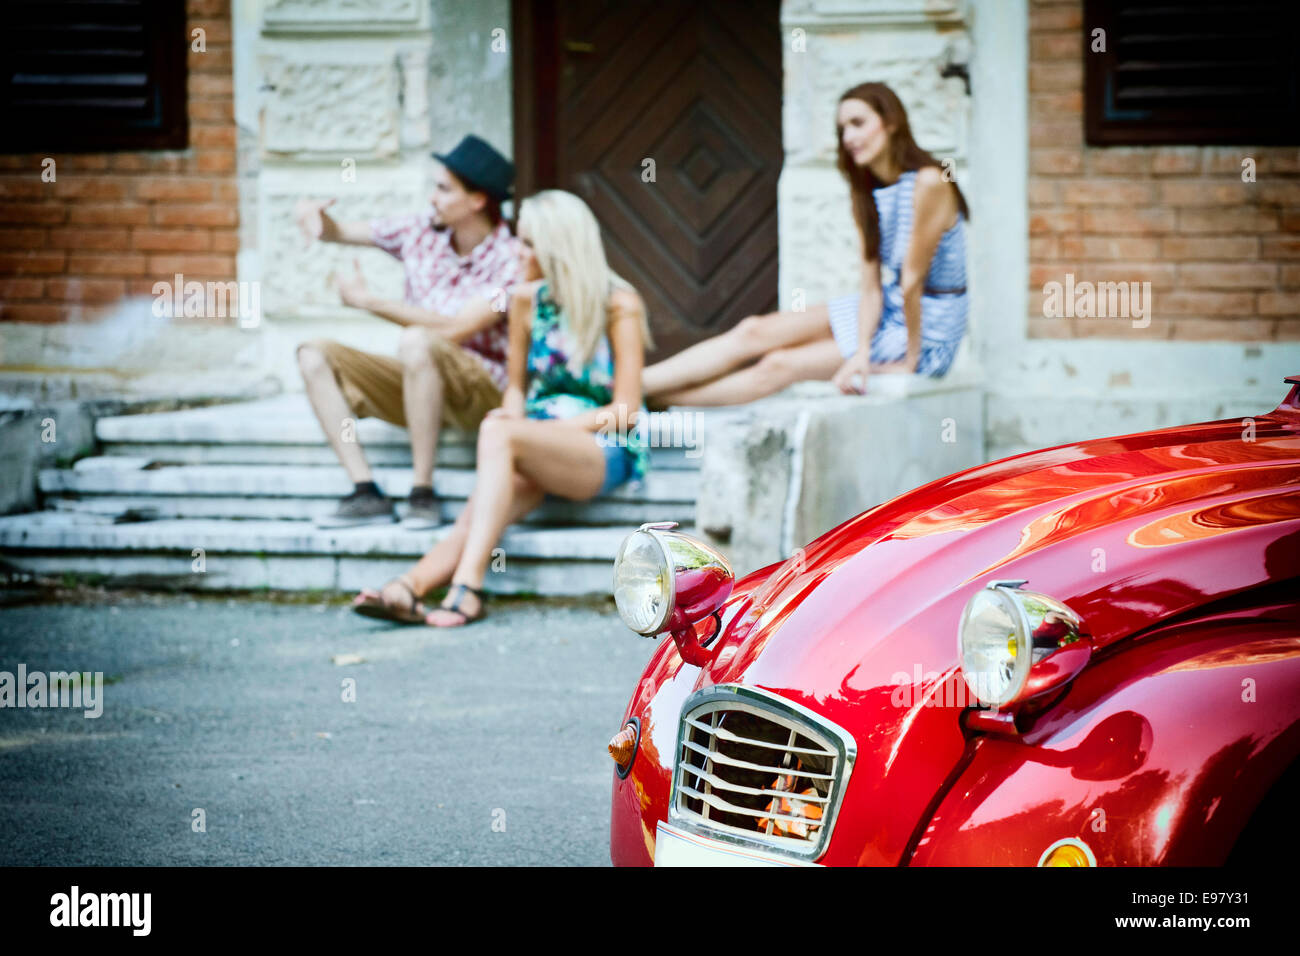 Young people on their road trip taking a break - Stock Image